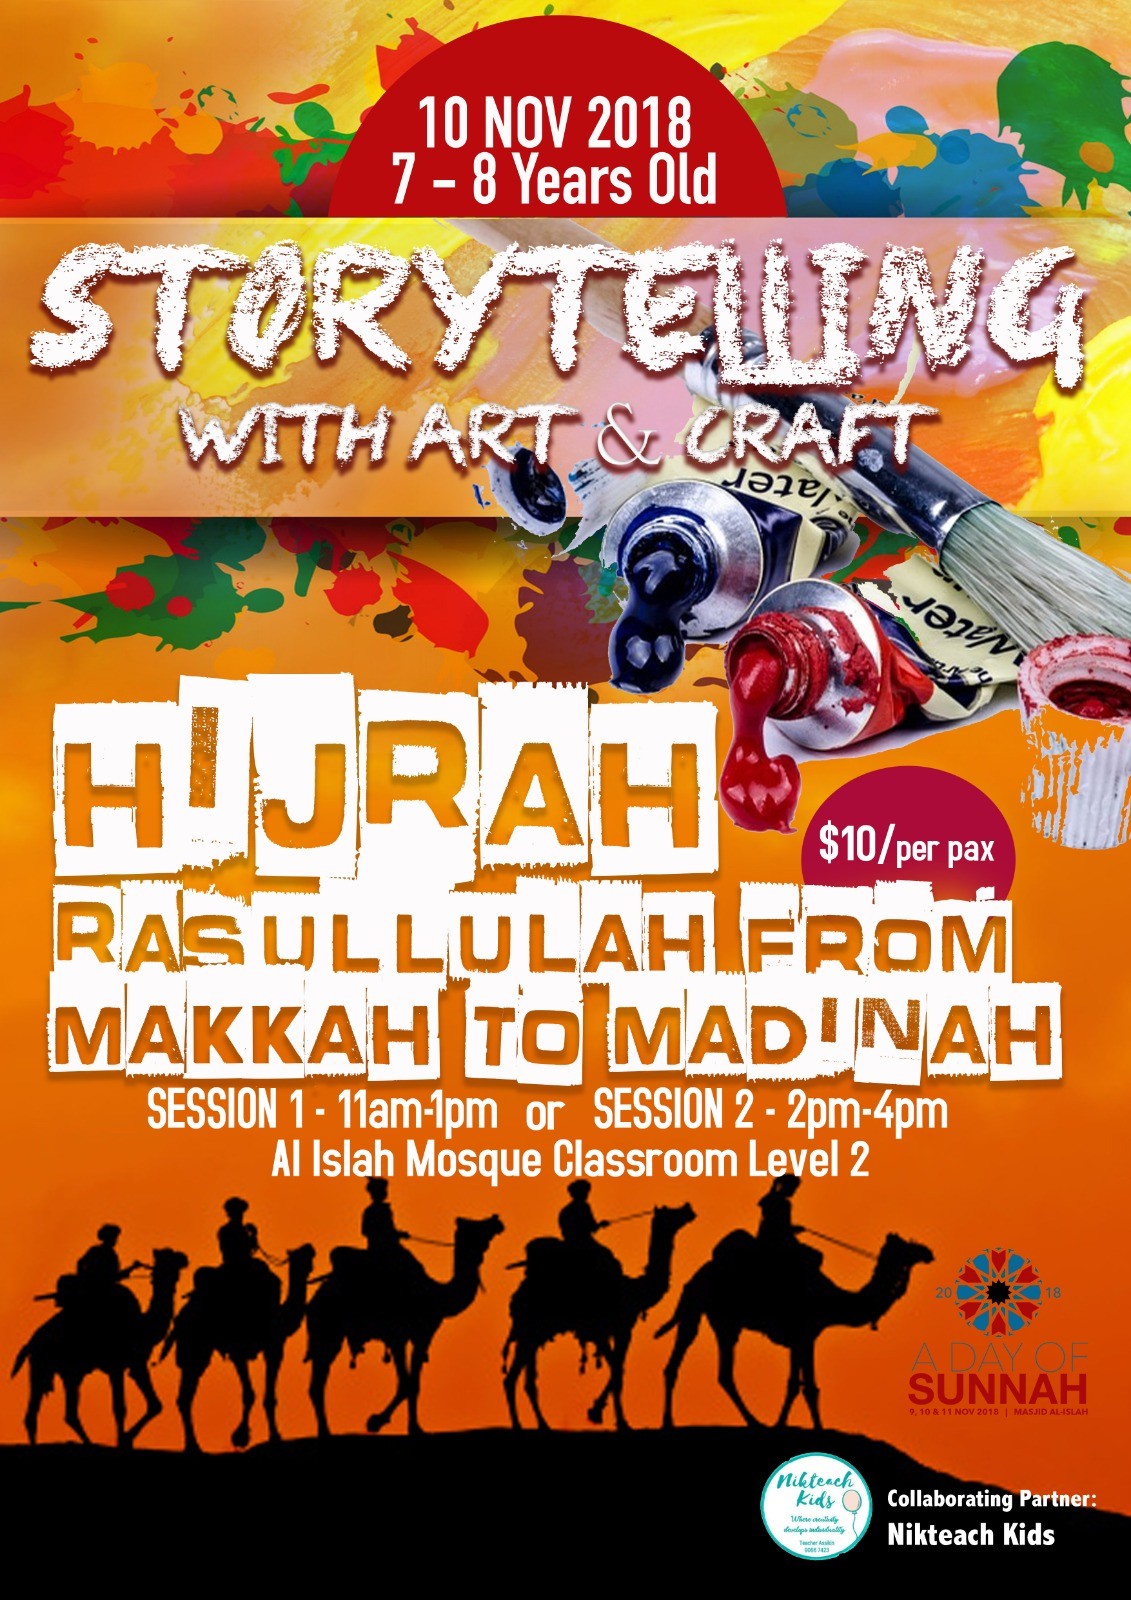 Storytelling with Art & Craft - Hijrah Rasulullah s.a.w. (REGISTRATION CLOSED)